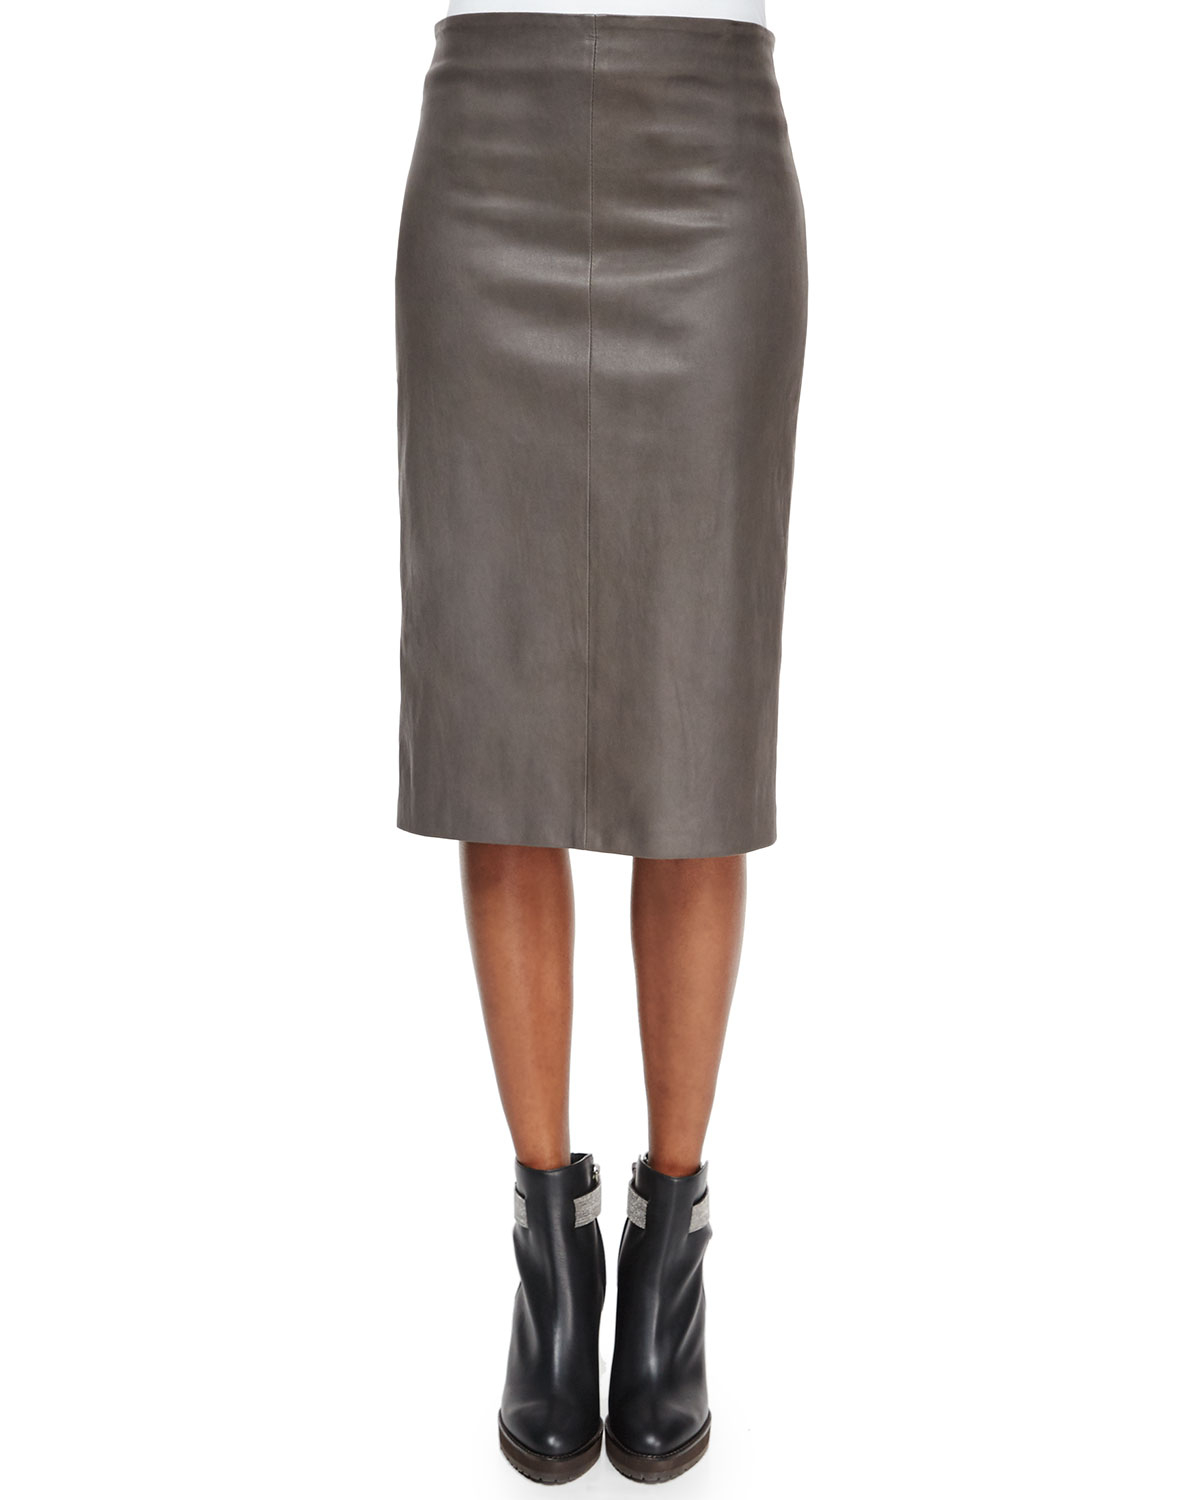 Free shipping BOTH ways on lamarque avana stretch leather pencil skirt, from our vast selection of styles. Fast delivery, and 24/7/ real-person service with a smile. Click or call